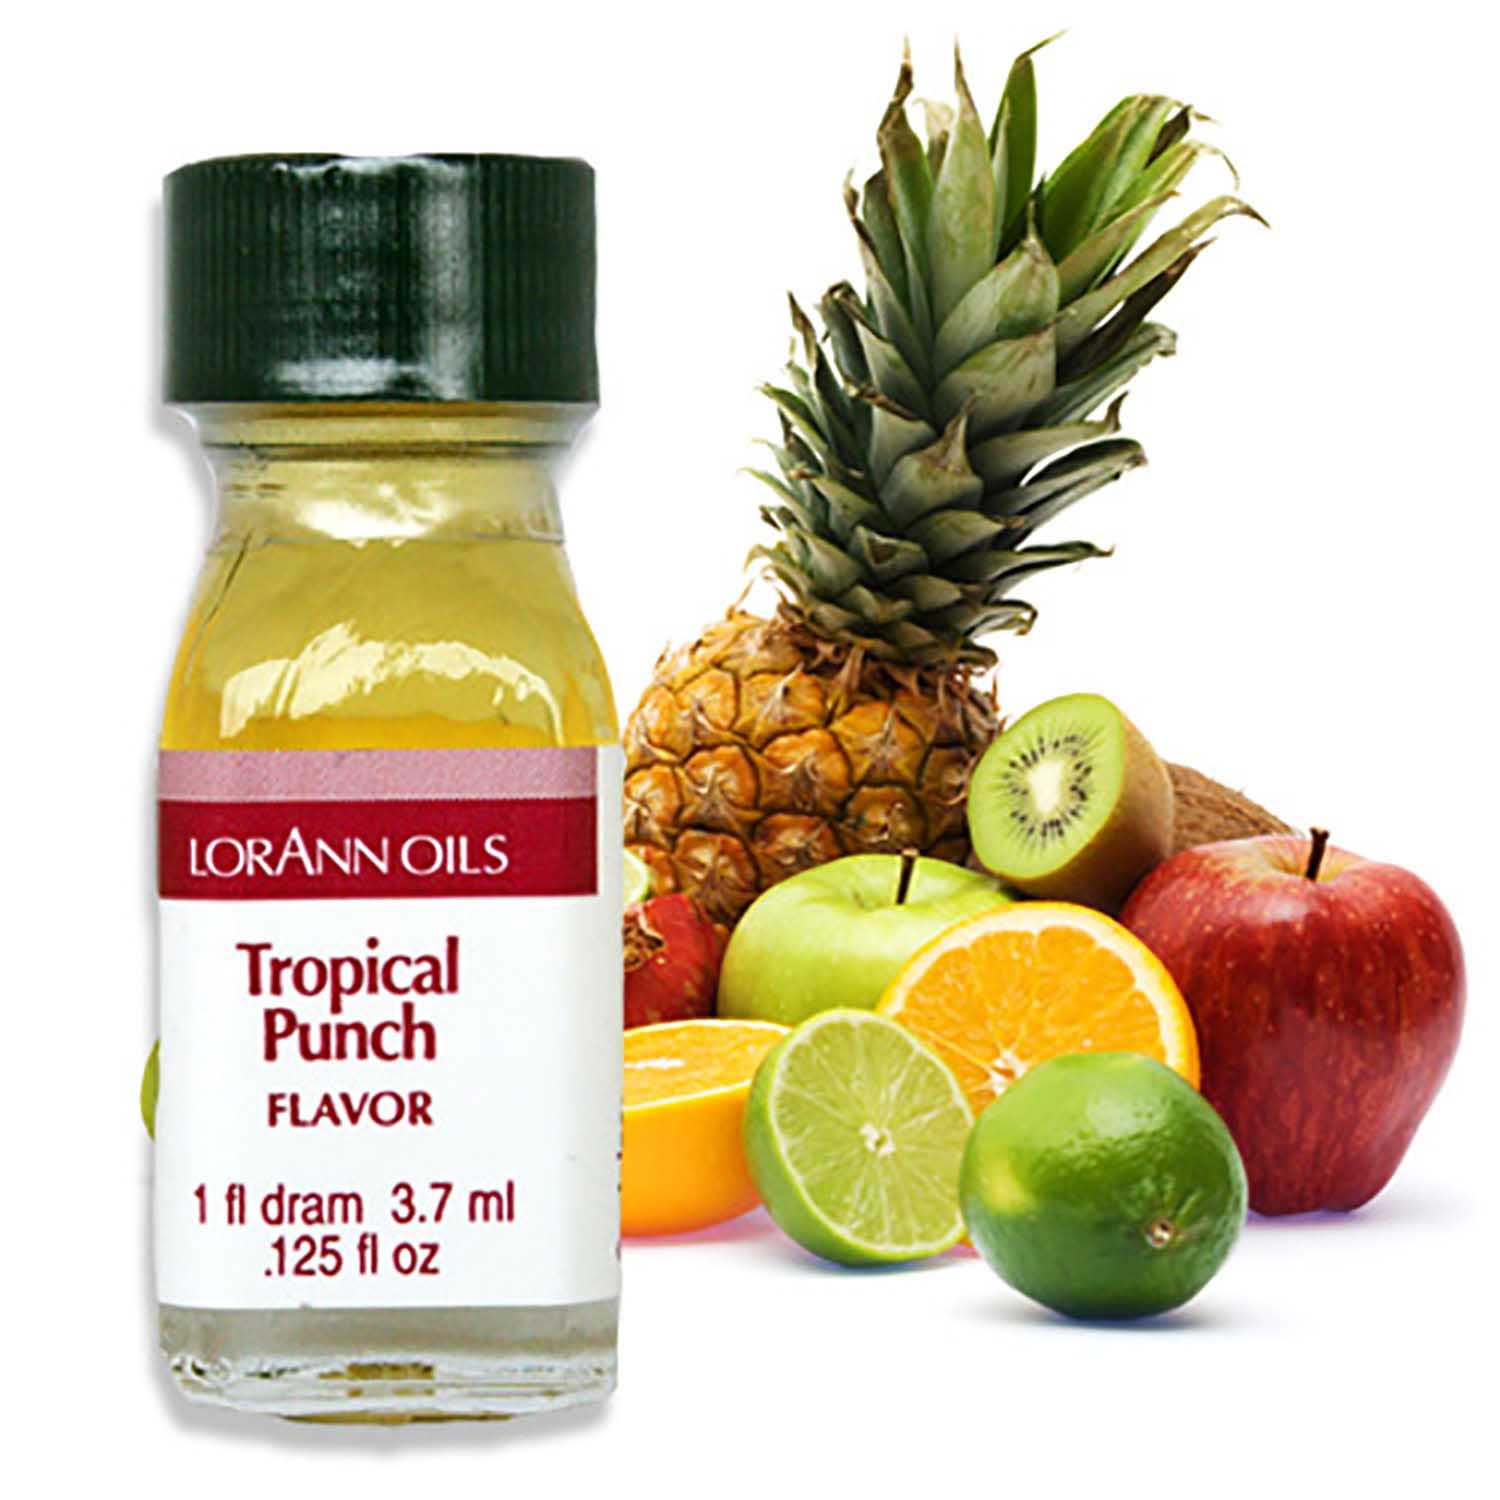 Tropical Punch Super-Strength Flavor